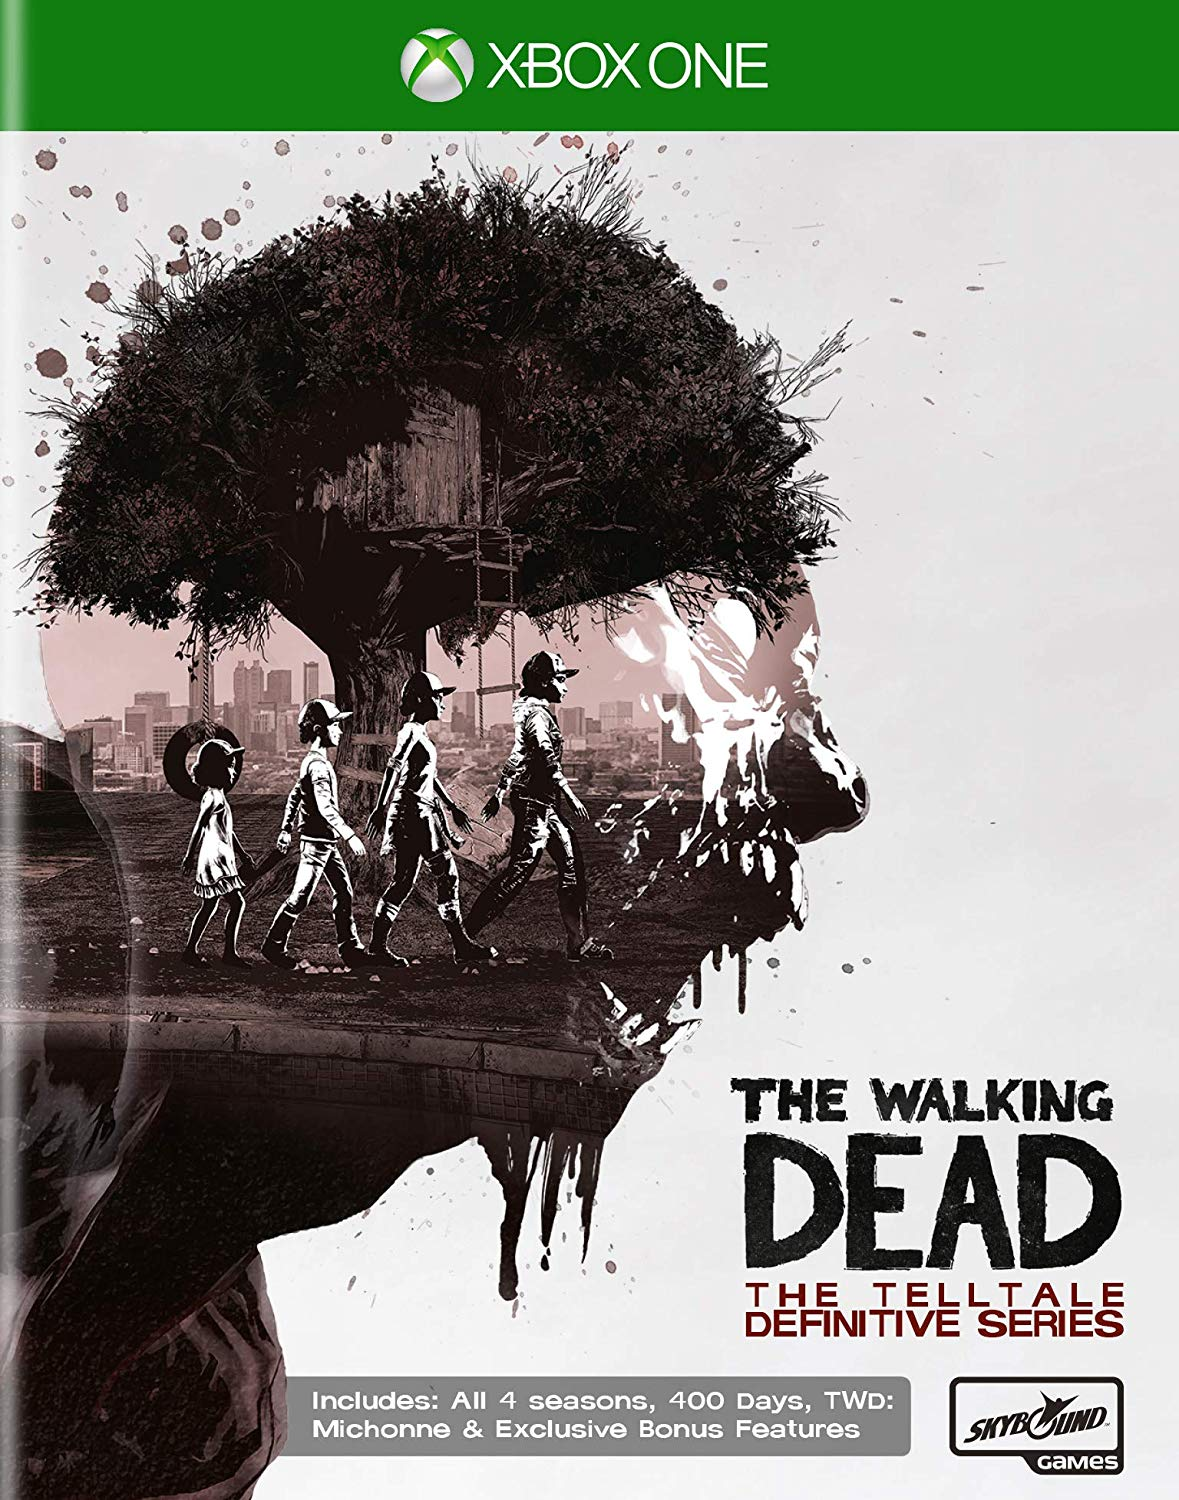 The Walking Dead: The Telltale Definitive Series Xbox One